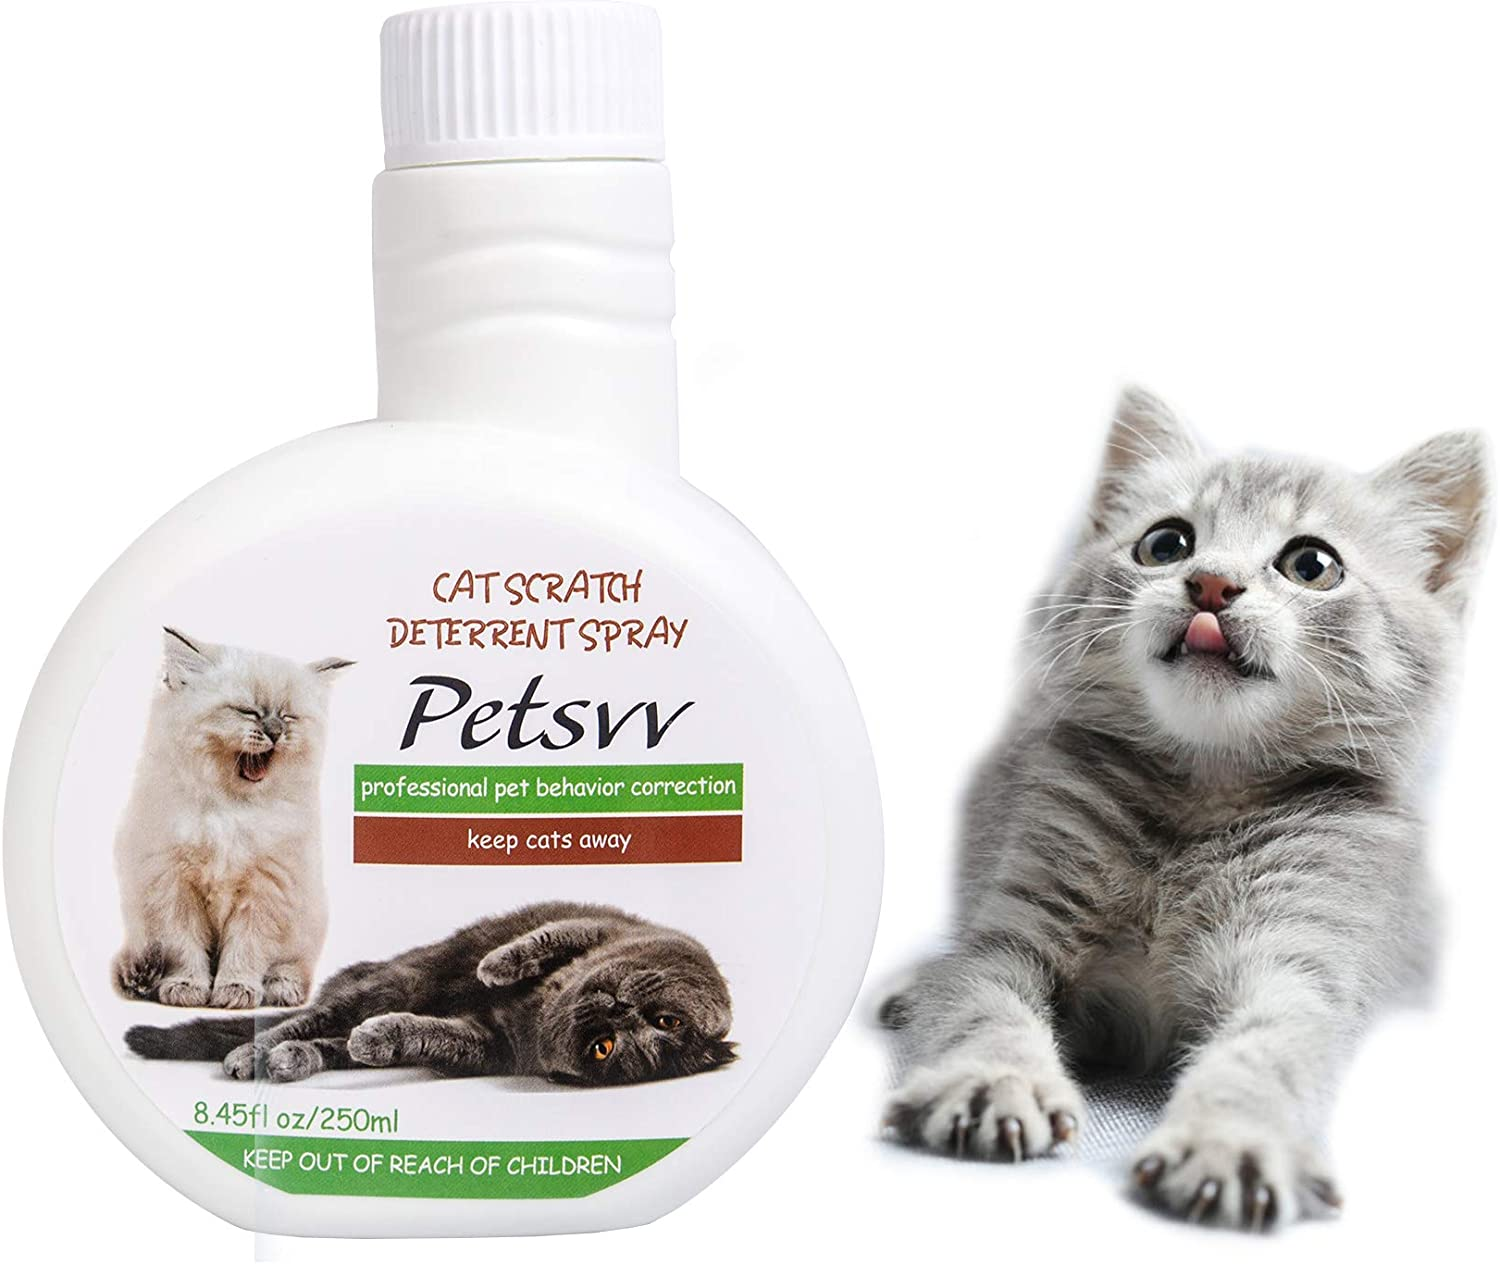 Anti Scratch Deterrent Spray for Cats, No Scratch Spray for Cats to Stop Scratching, Cat Repellent Spray for Indoor Use - 8.45oz